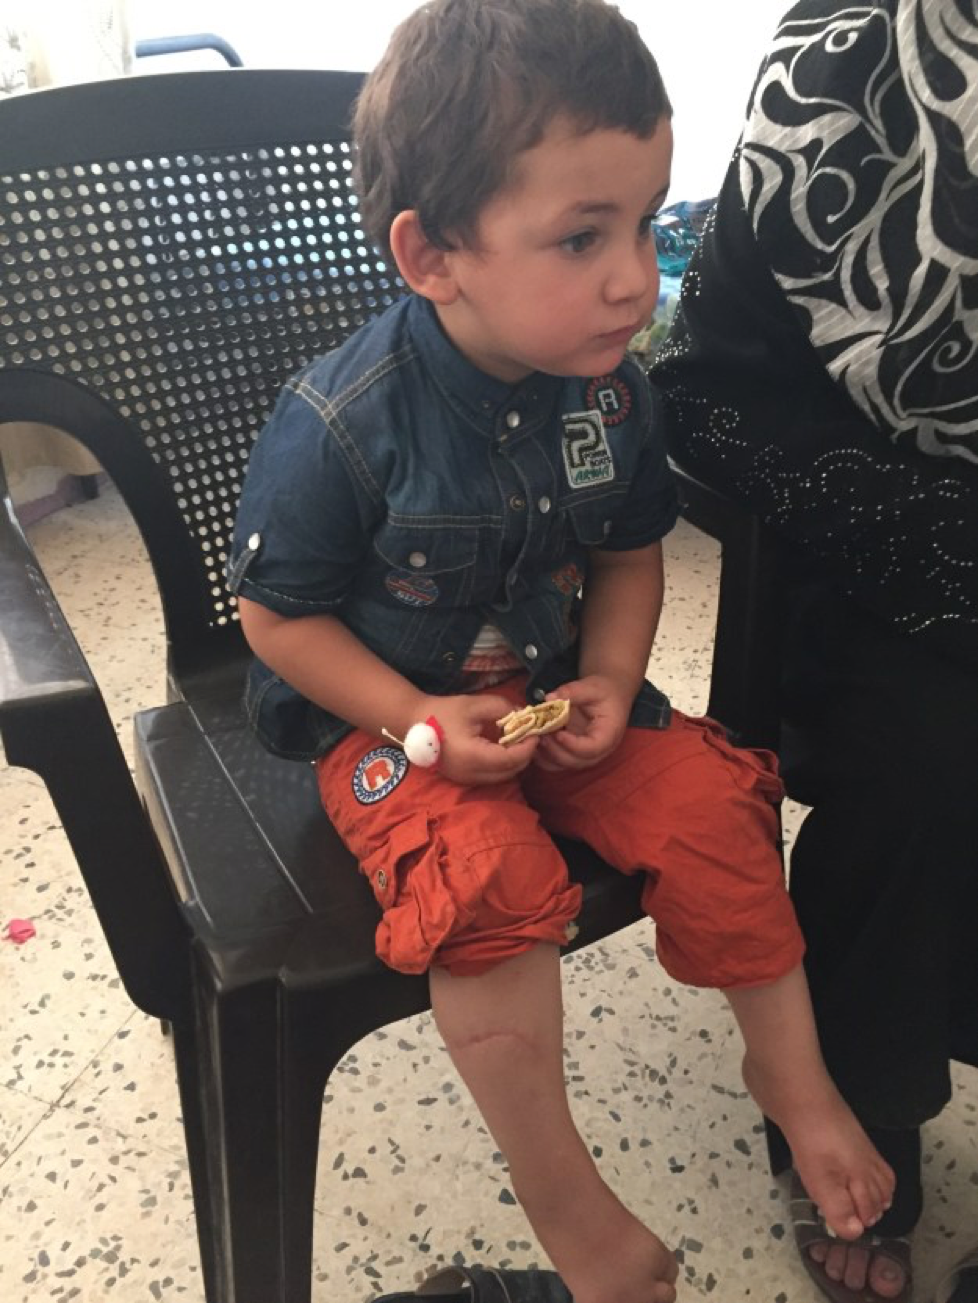 If you look at this little one's left shin, you can see the scar where he had trauma to his leg from a piece of farm equipment. He now has permanent ligamentous damage in his lower extremity, but due to his young age, he is compensating very well and will likely adapt as he grows if he is unable to get the surgery that he needs to correct it.